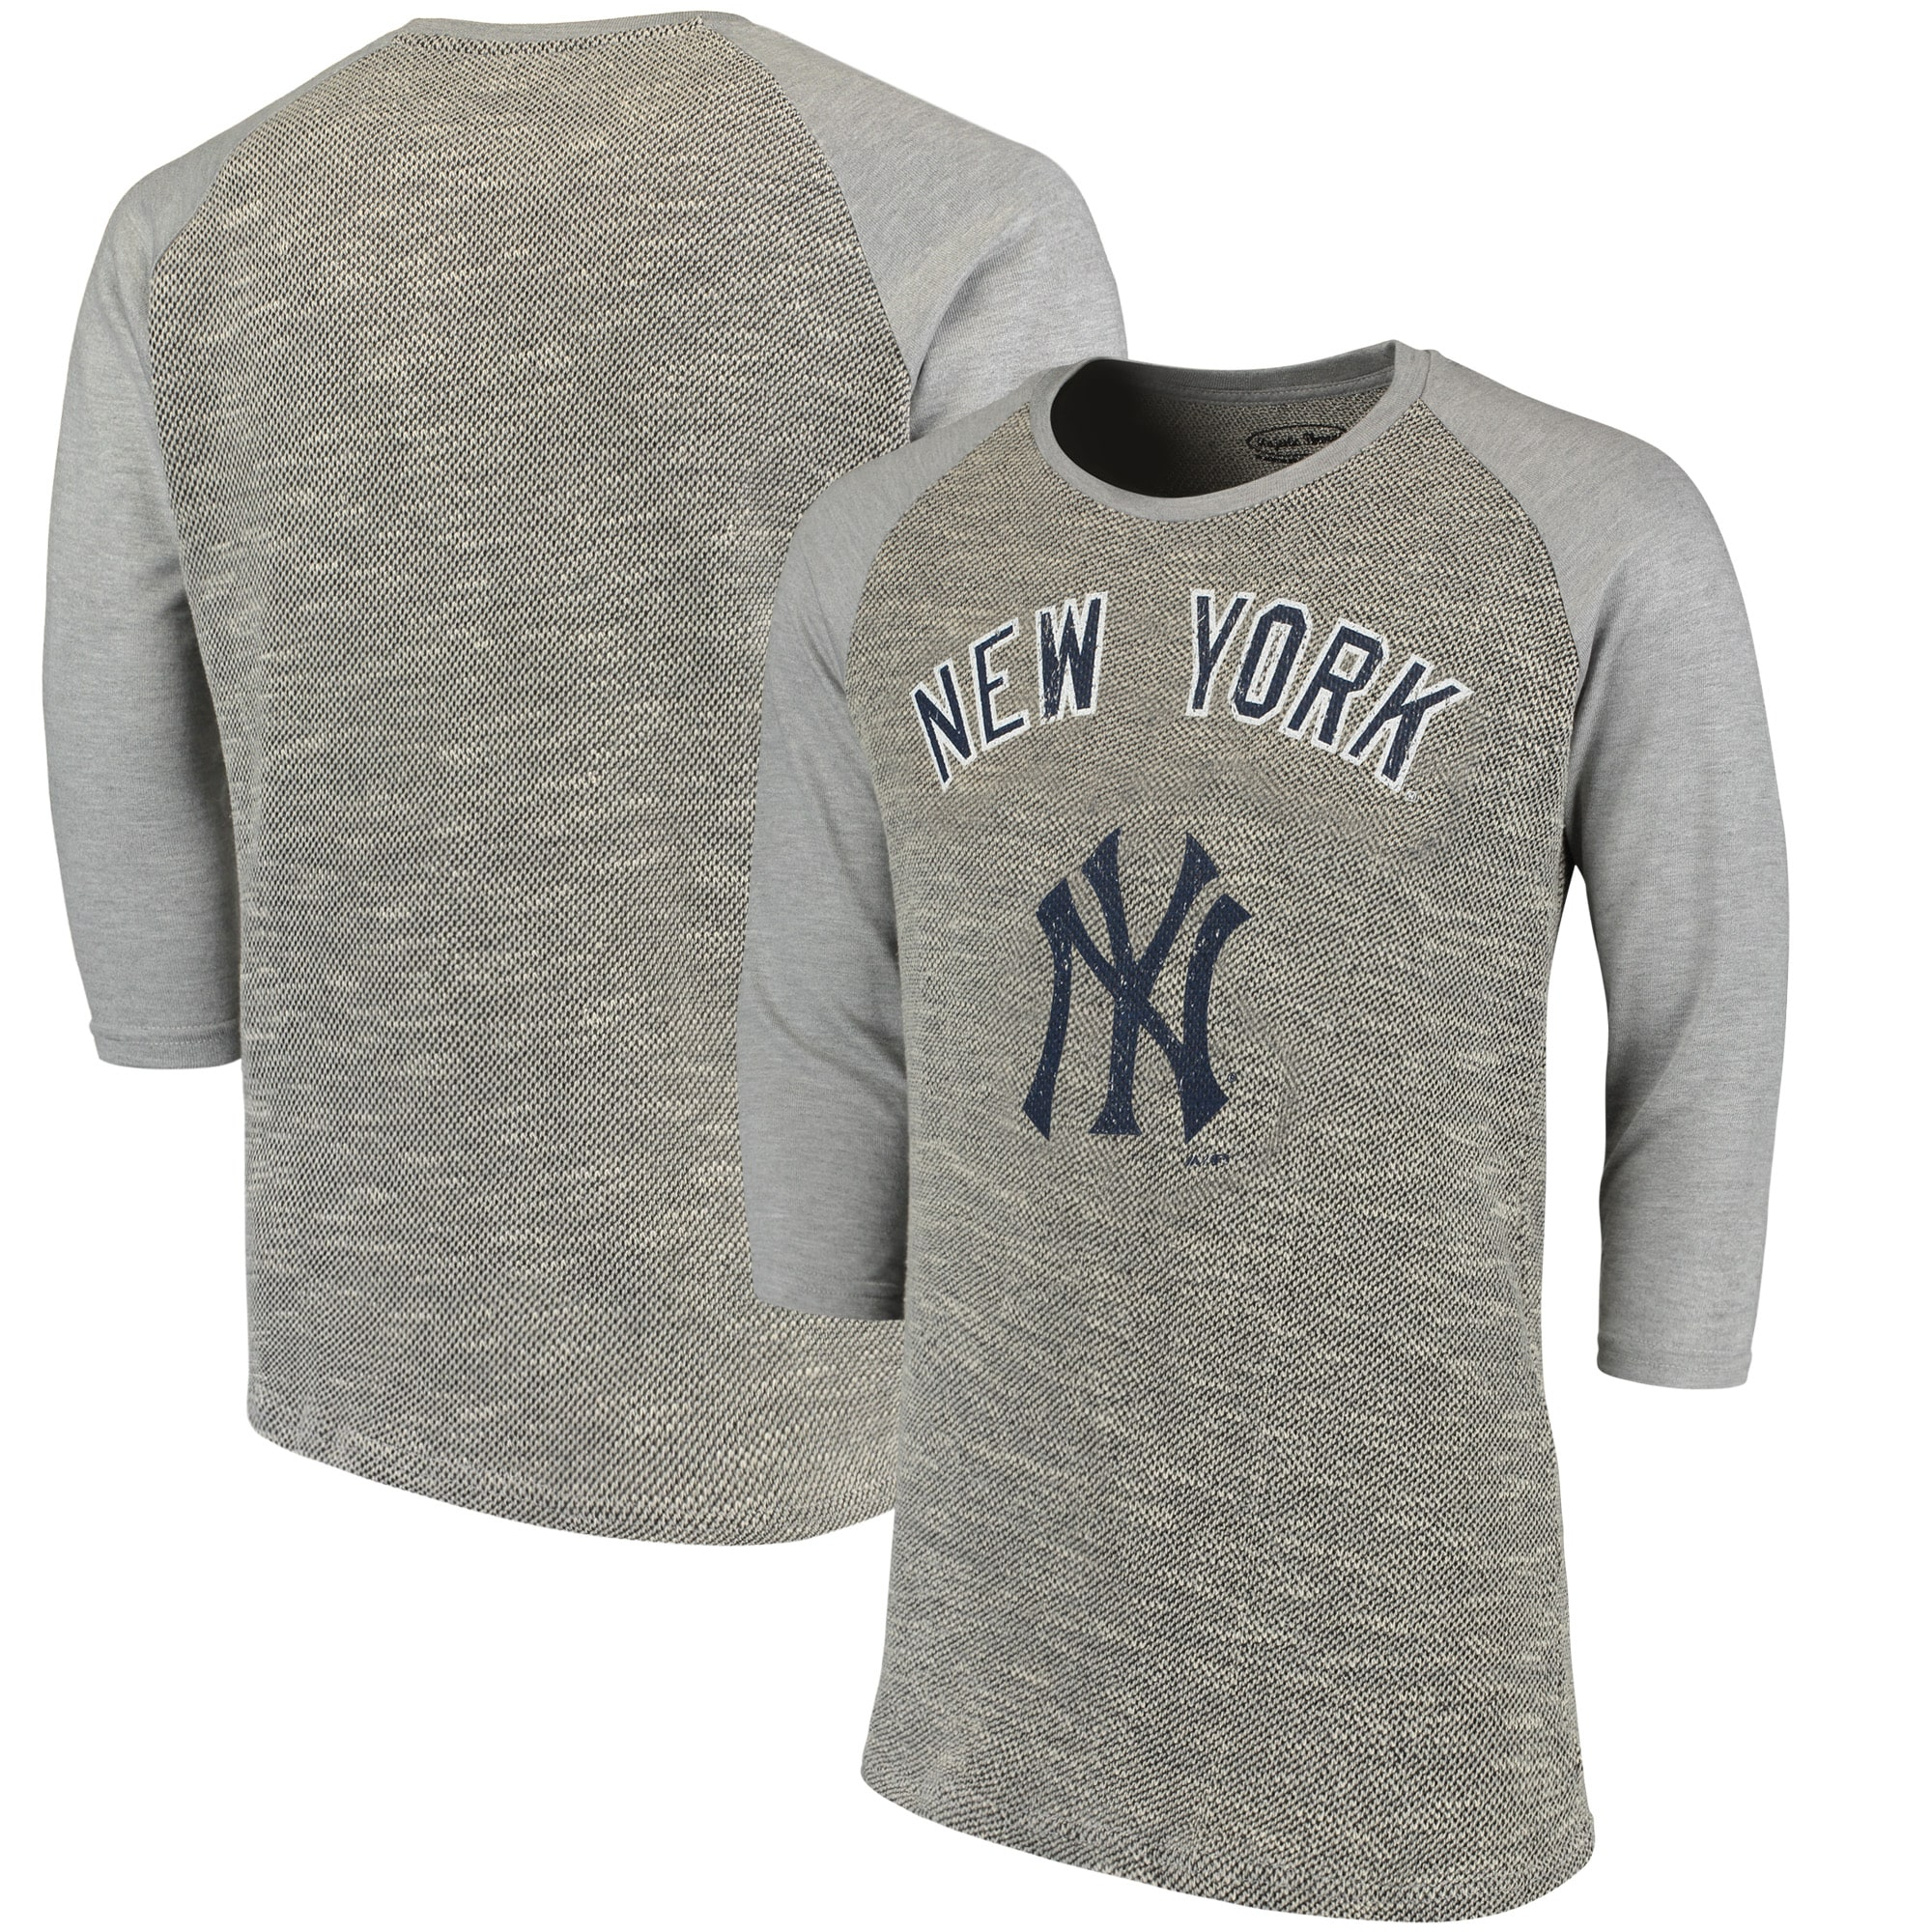 New York Yankees Majestic Threads Tri-Yarn French Terry 3/4-Sleeve Raglan T-Shirt - Gray